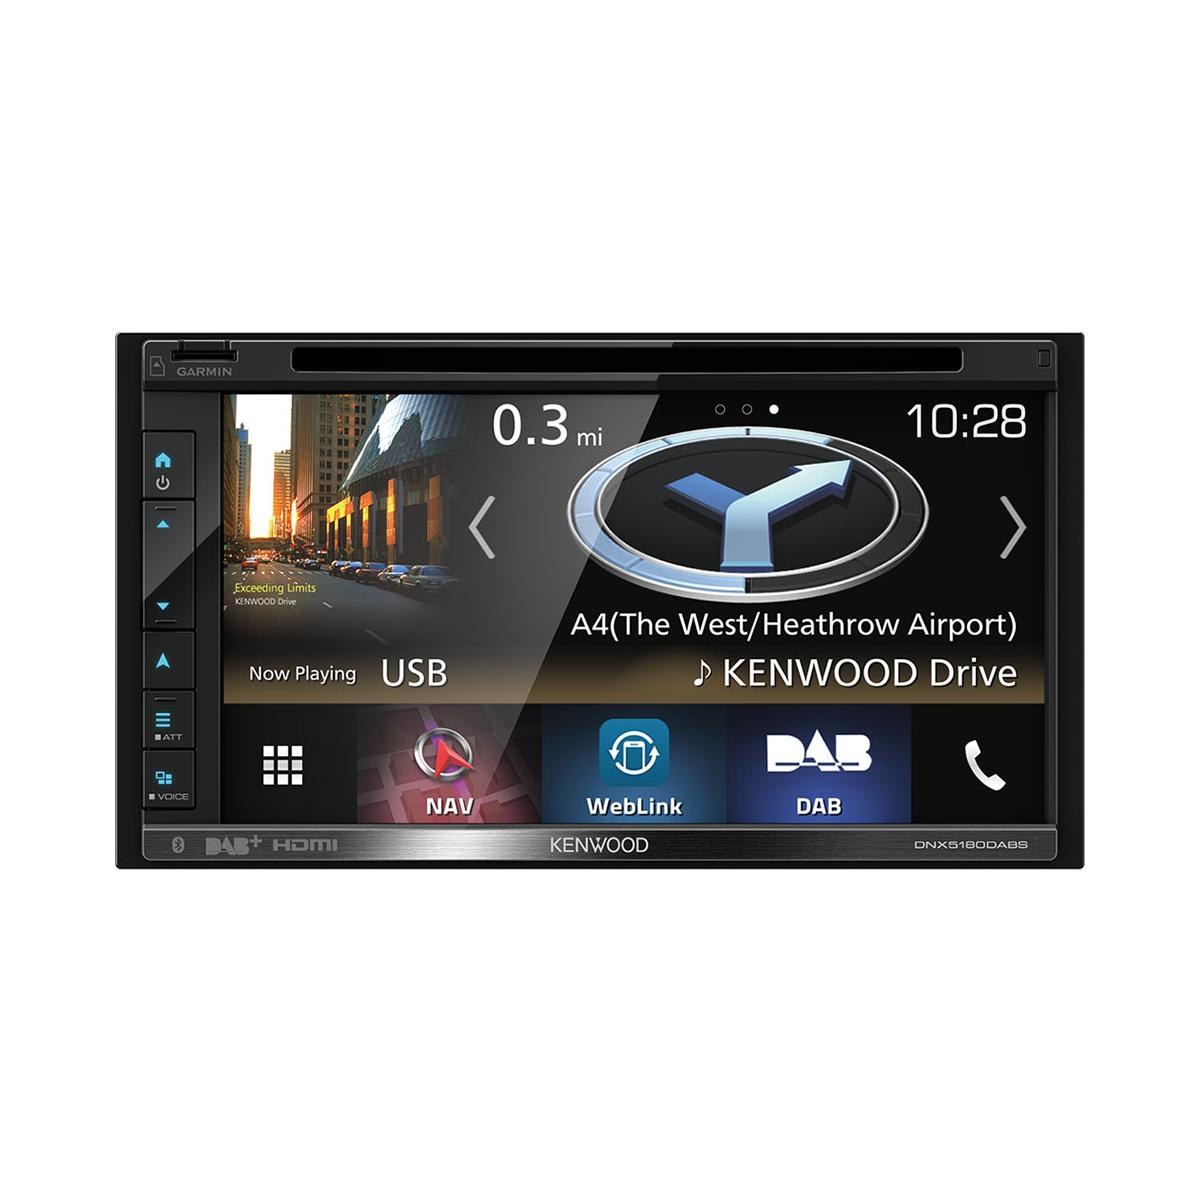 In Car Sat Nav Kenwood DNX5180DABS 2